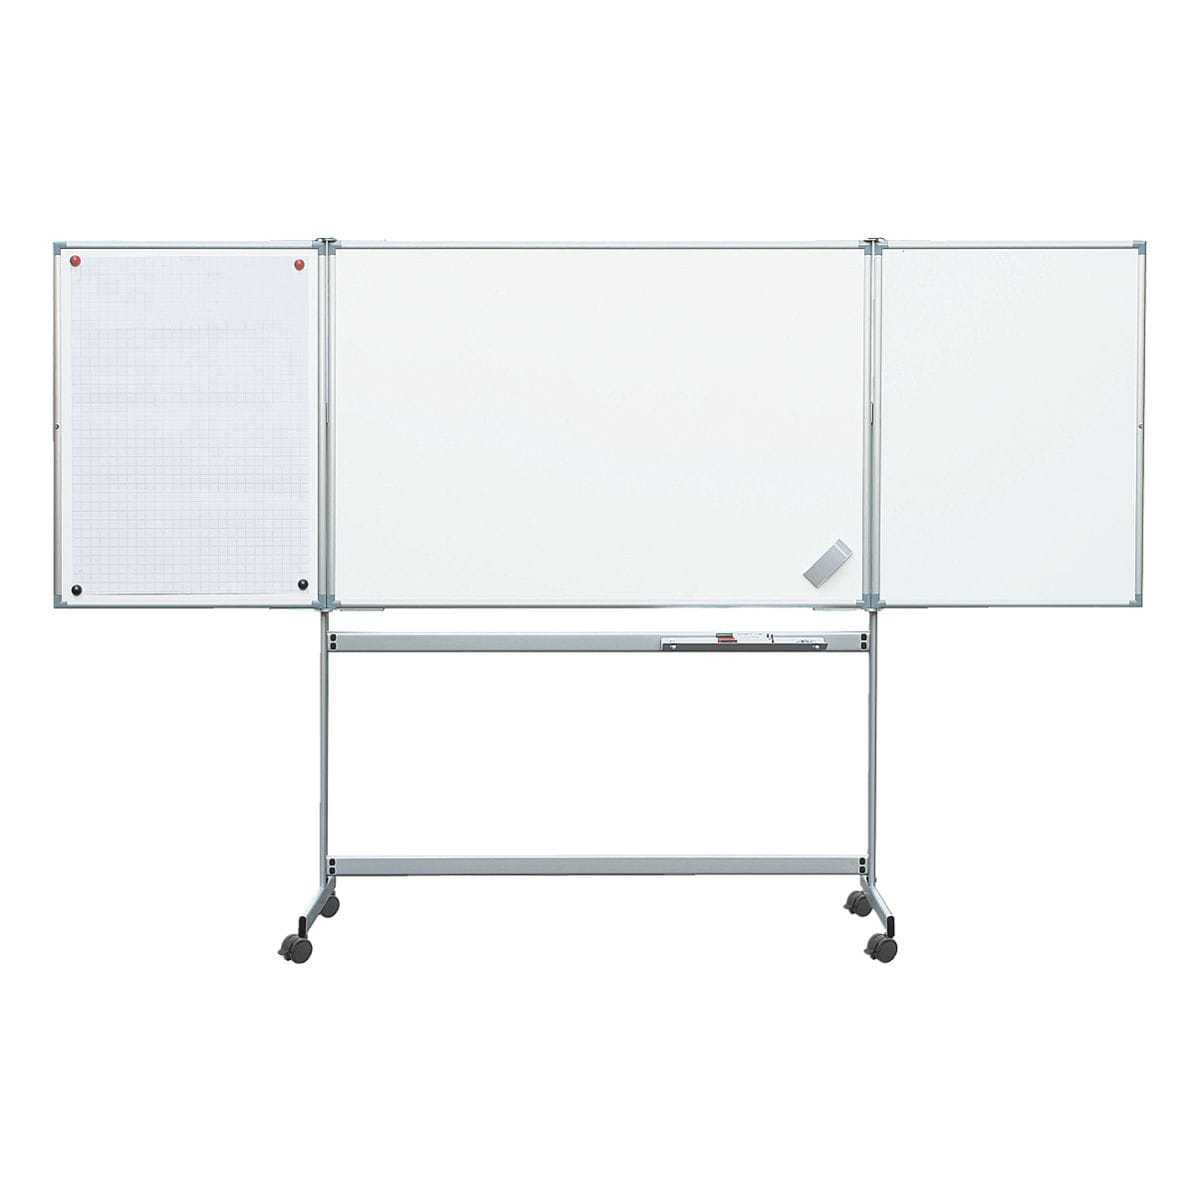 Whiteboard Günstig Maul Whiteboard 6338184 300 X 100 Cm Bei Otto Office